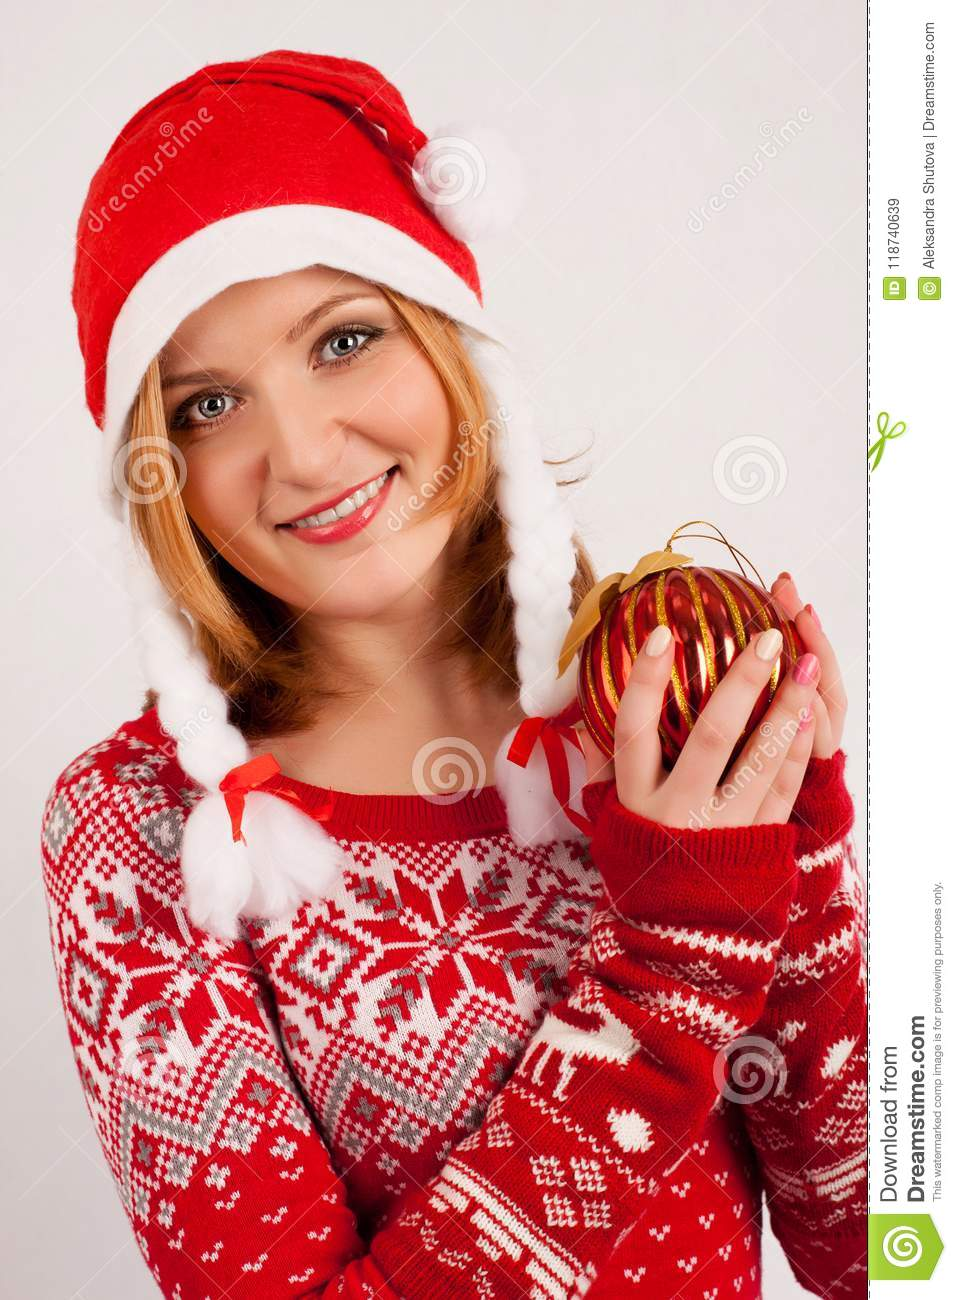 Blonde woman in red New Year`s sweater and New Year`s cap on white background holds Christmas tree ball